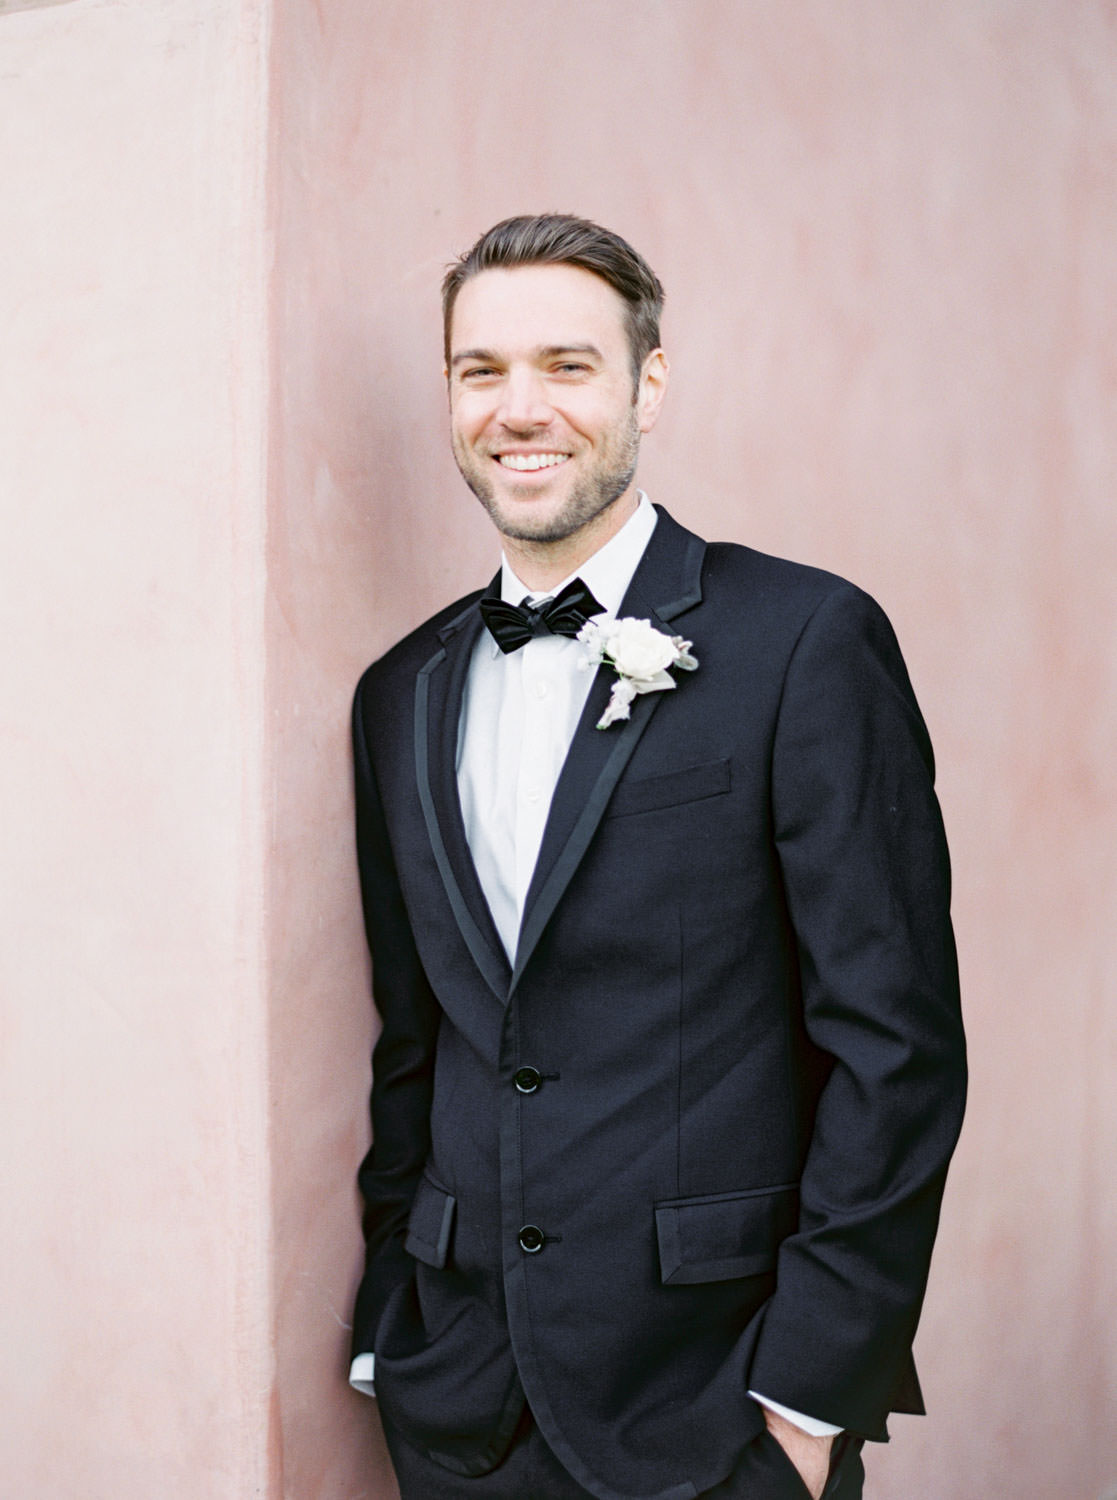 Groom portrait in The Black Tux against a pink wall at Grand Del Mar, Cavin Elizabeth Photography